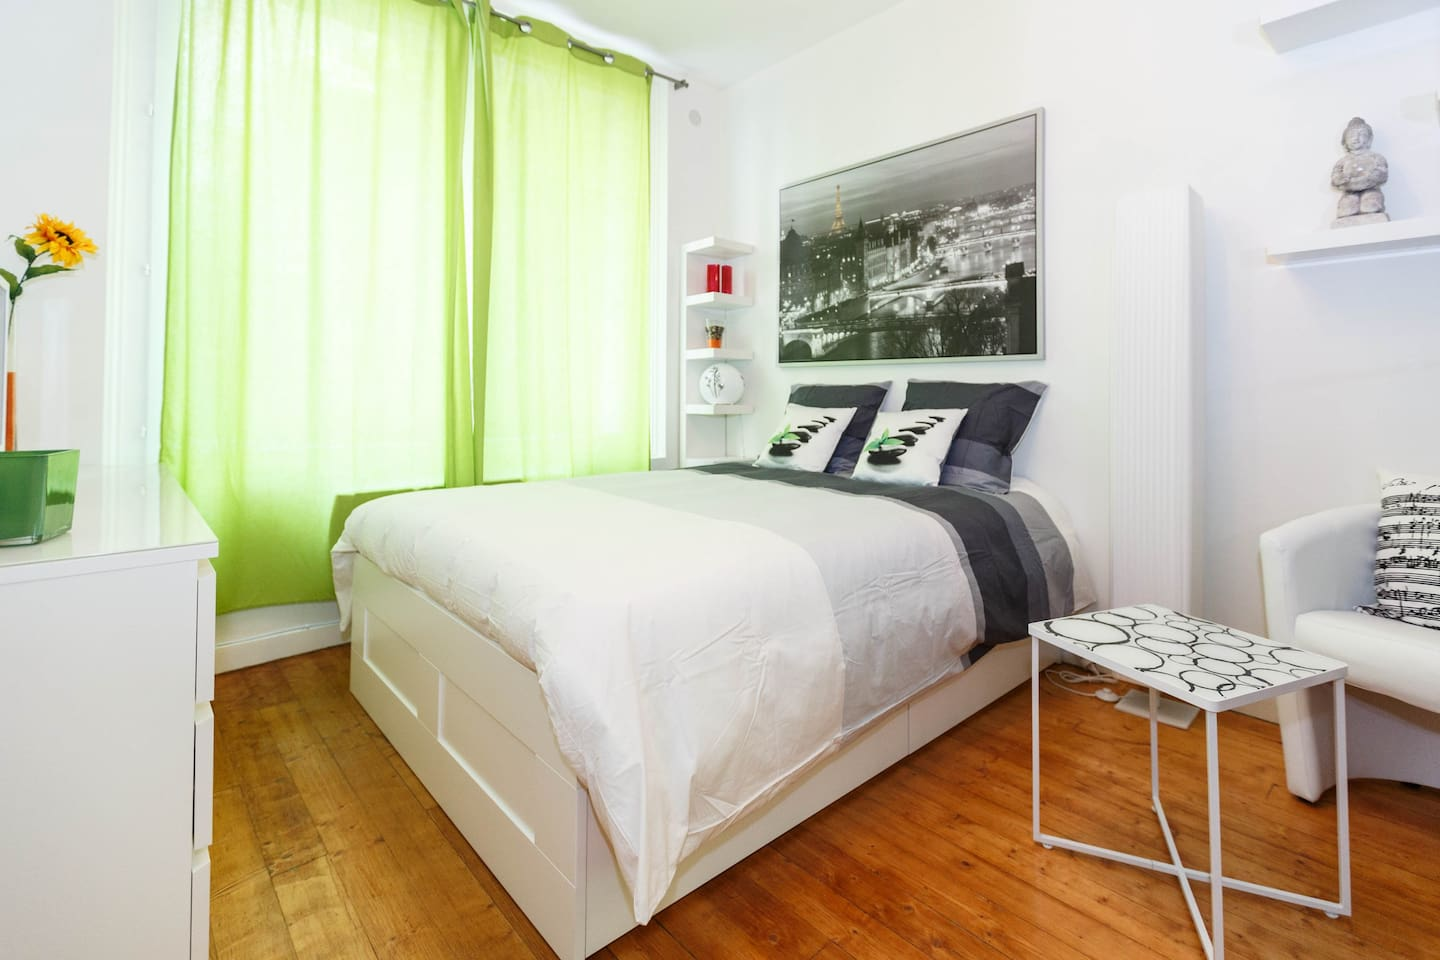 Bedroom with large bright window